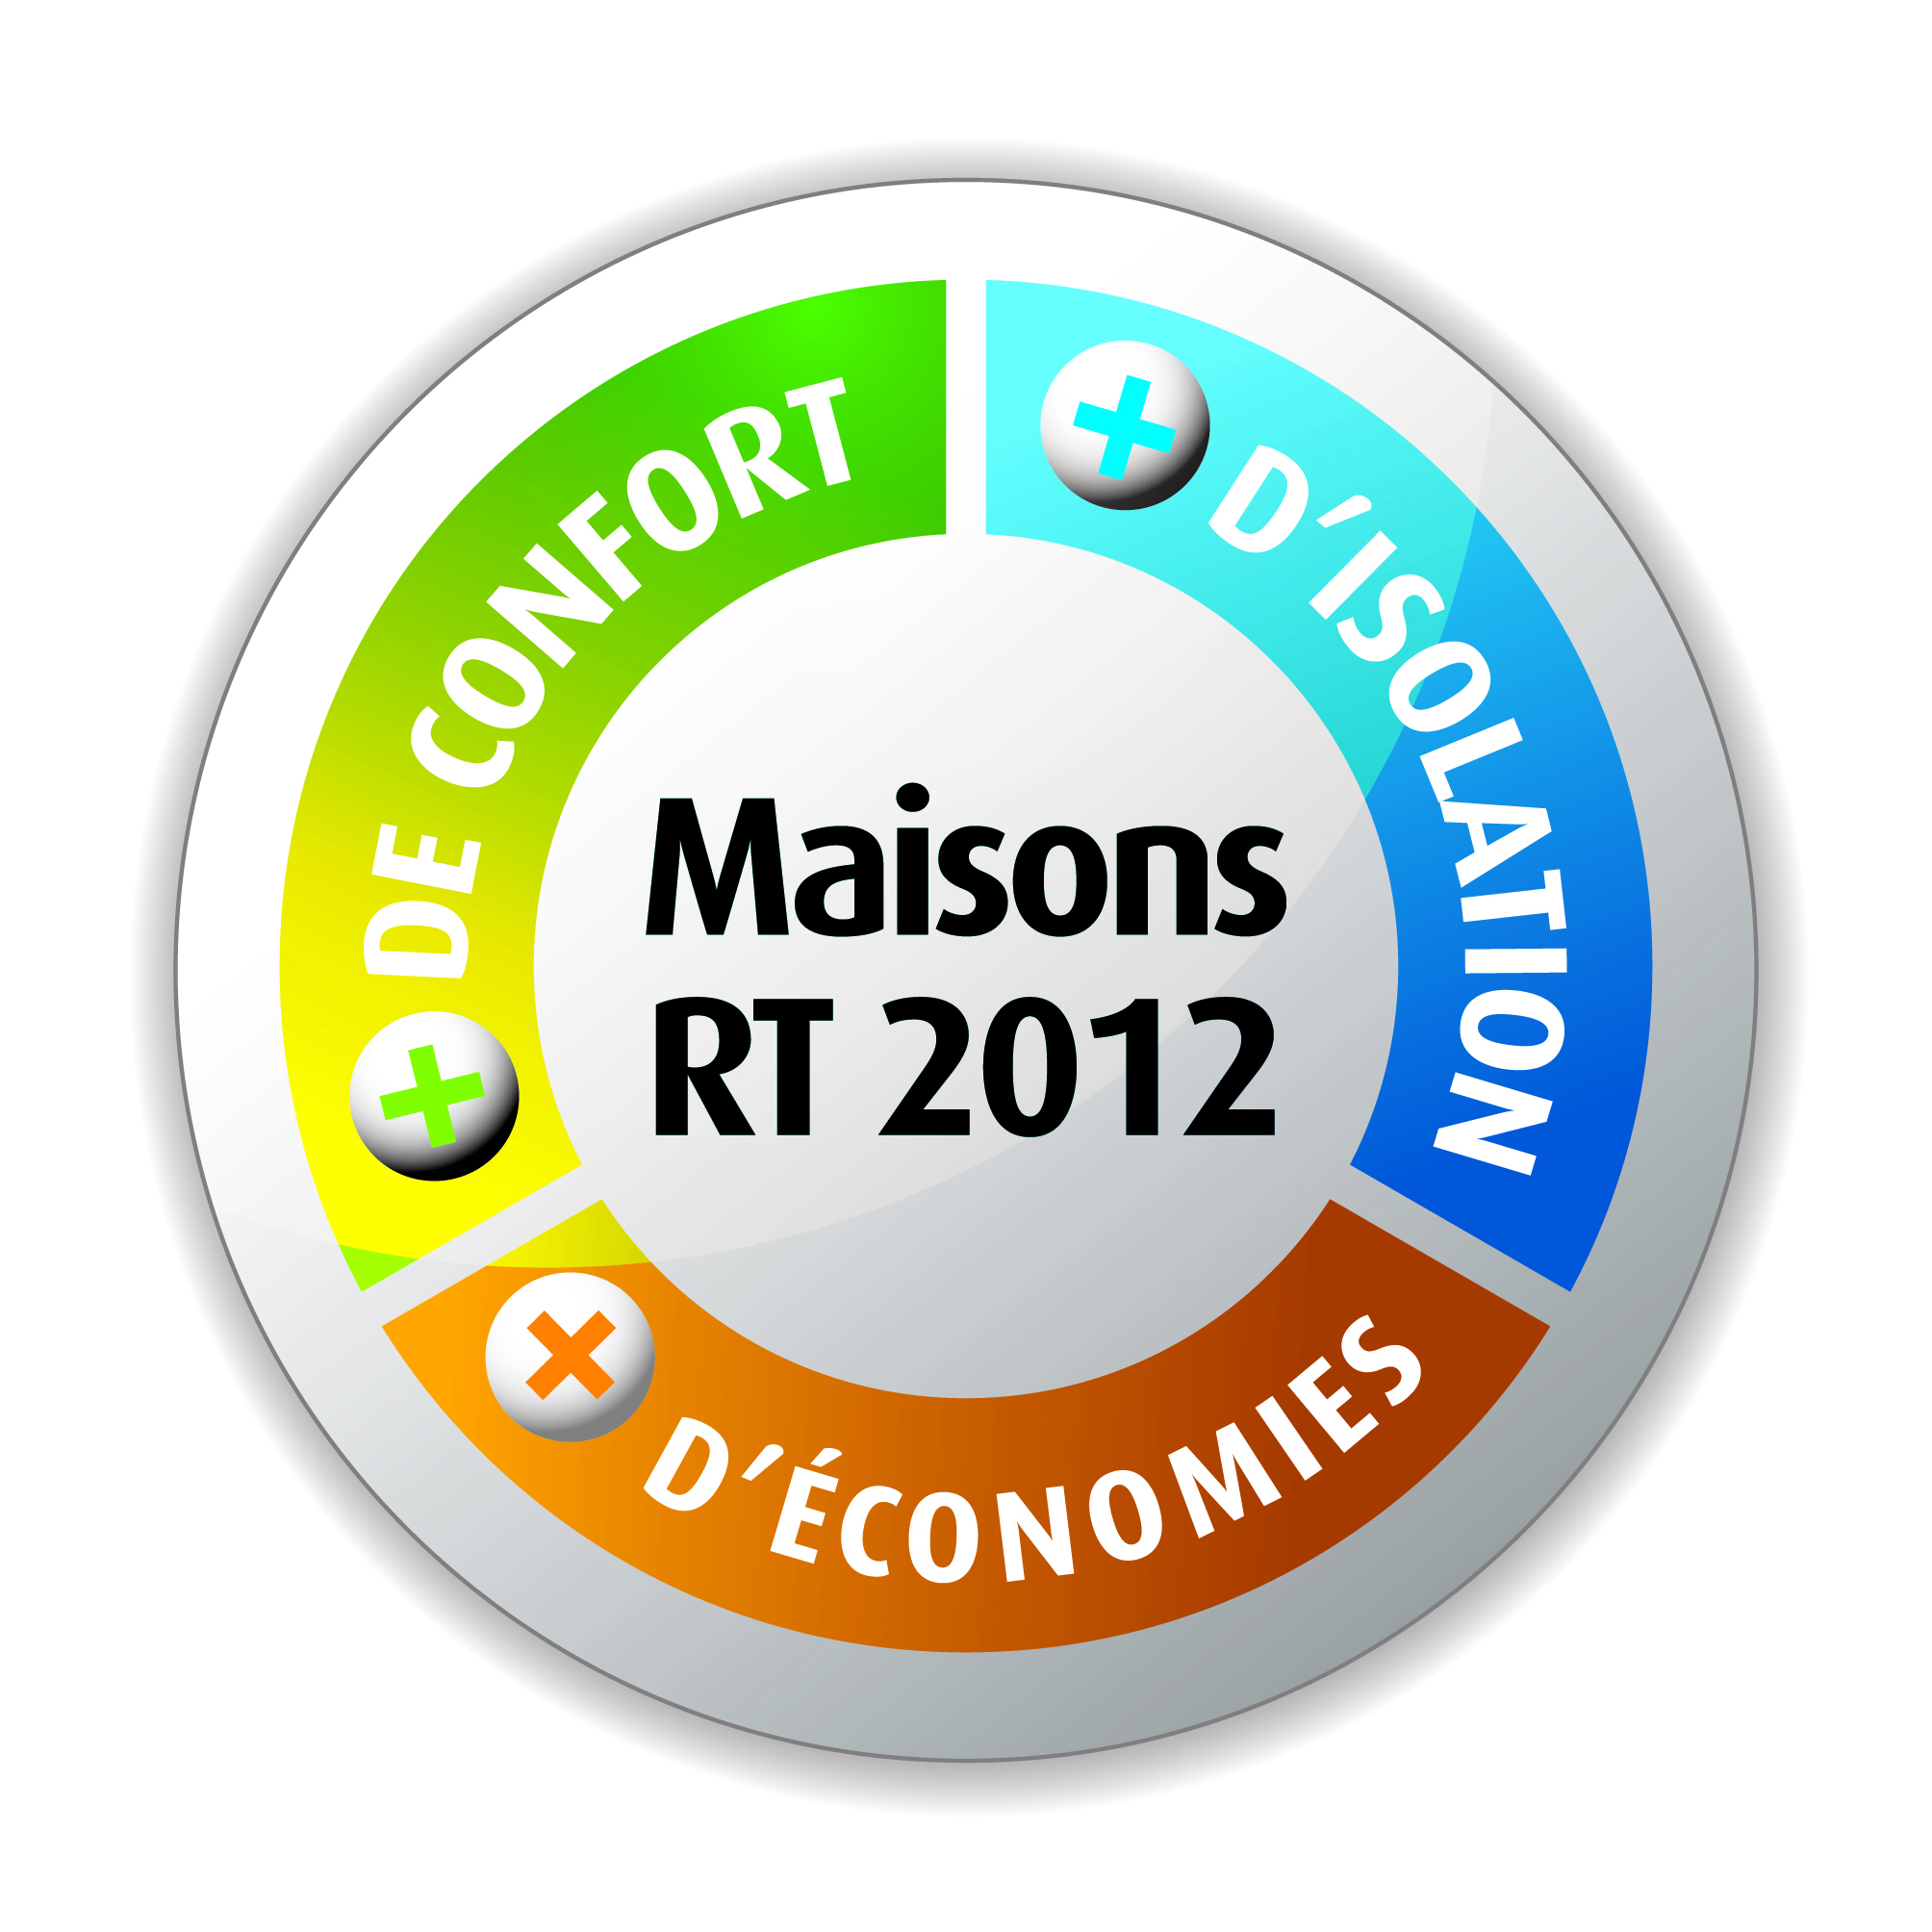 datas.crea-concept.fr/files/news/articles/files/logo_maisons_rt_2012.jpg